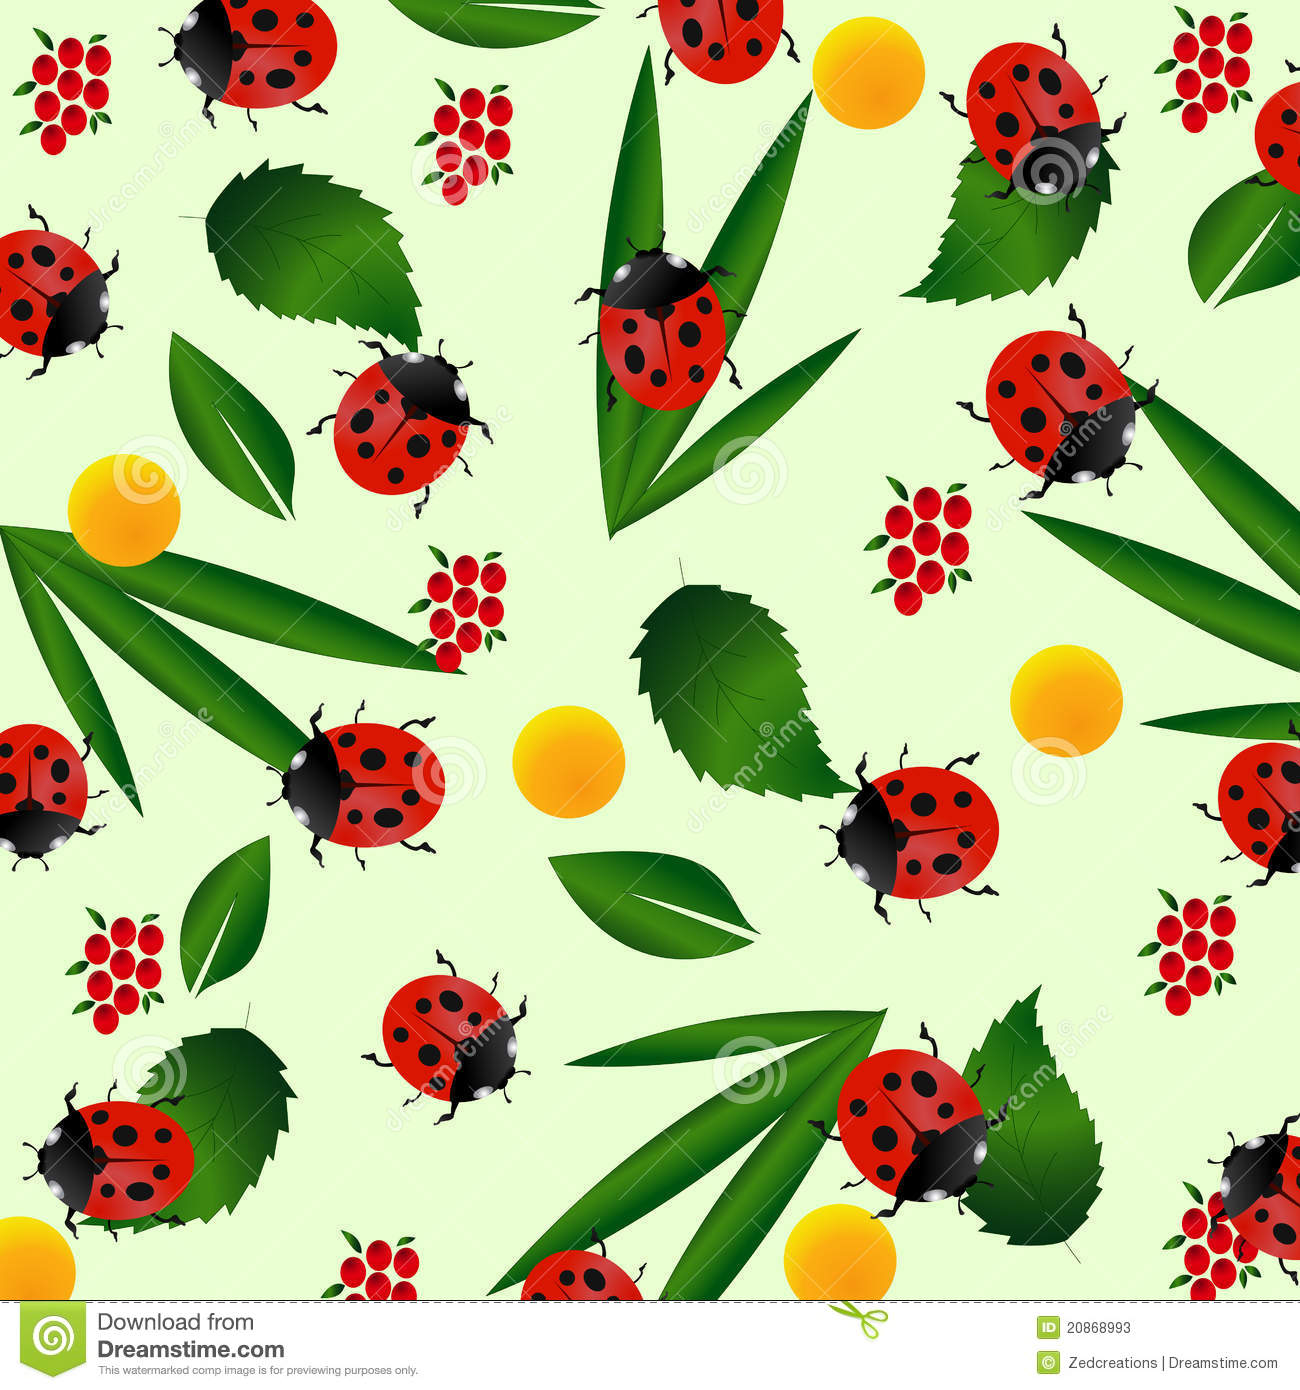 Fall Leaves Clip Art Wallpaper Ladybug Seamless Pattern Stock Photos Image 20868993